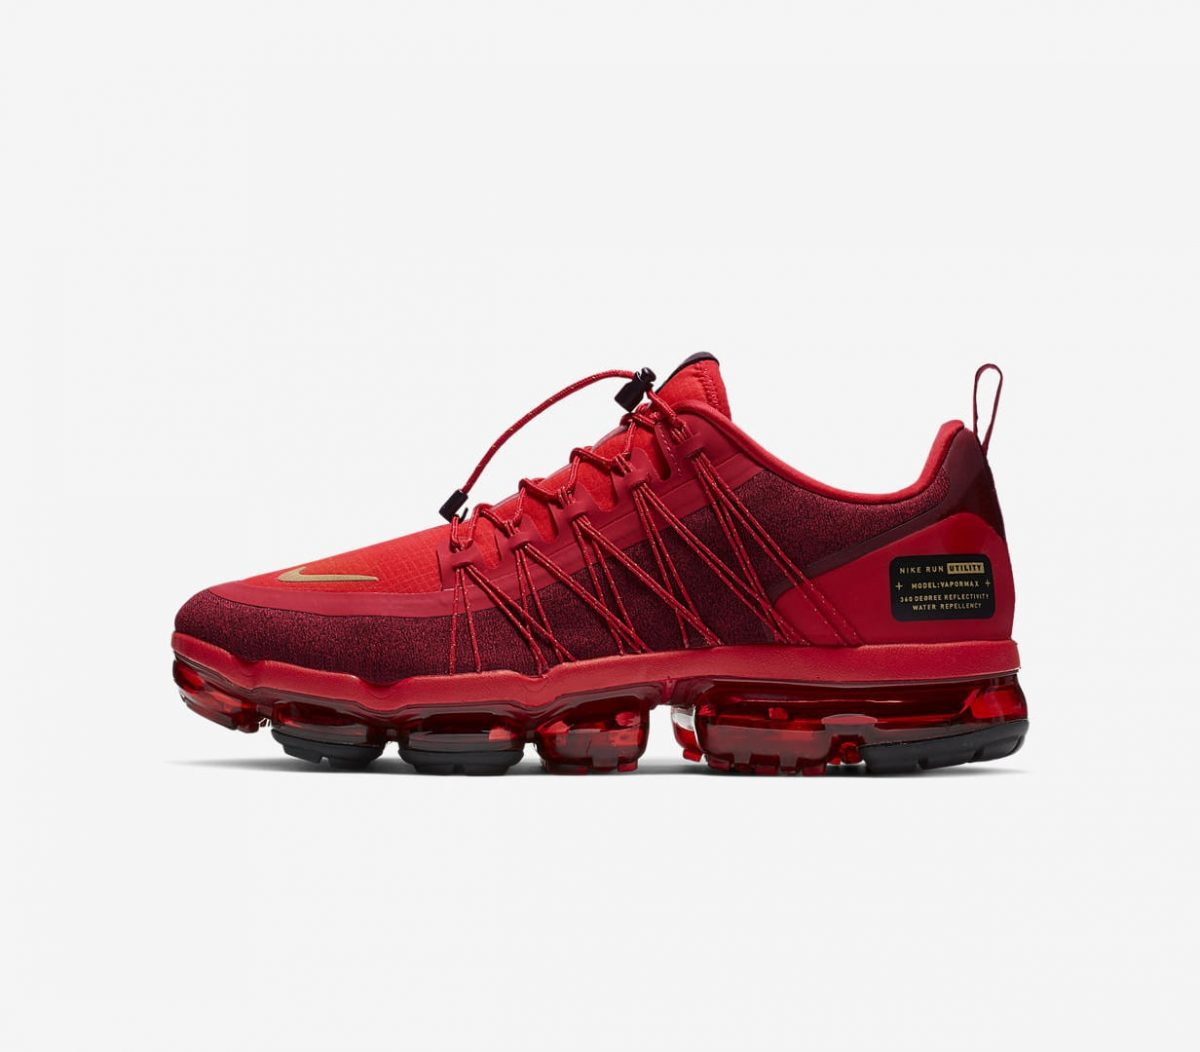 abfaf05d410 A Fourth VaporMax Joins Nike s Chinese New Year Collection - HOUSE ...